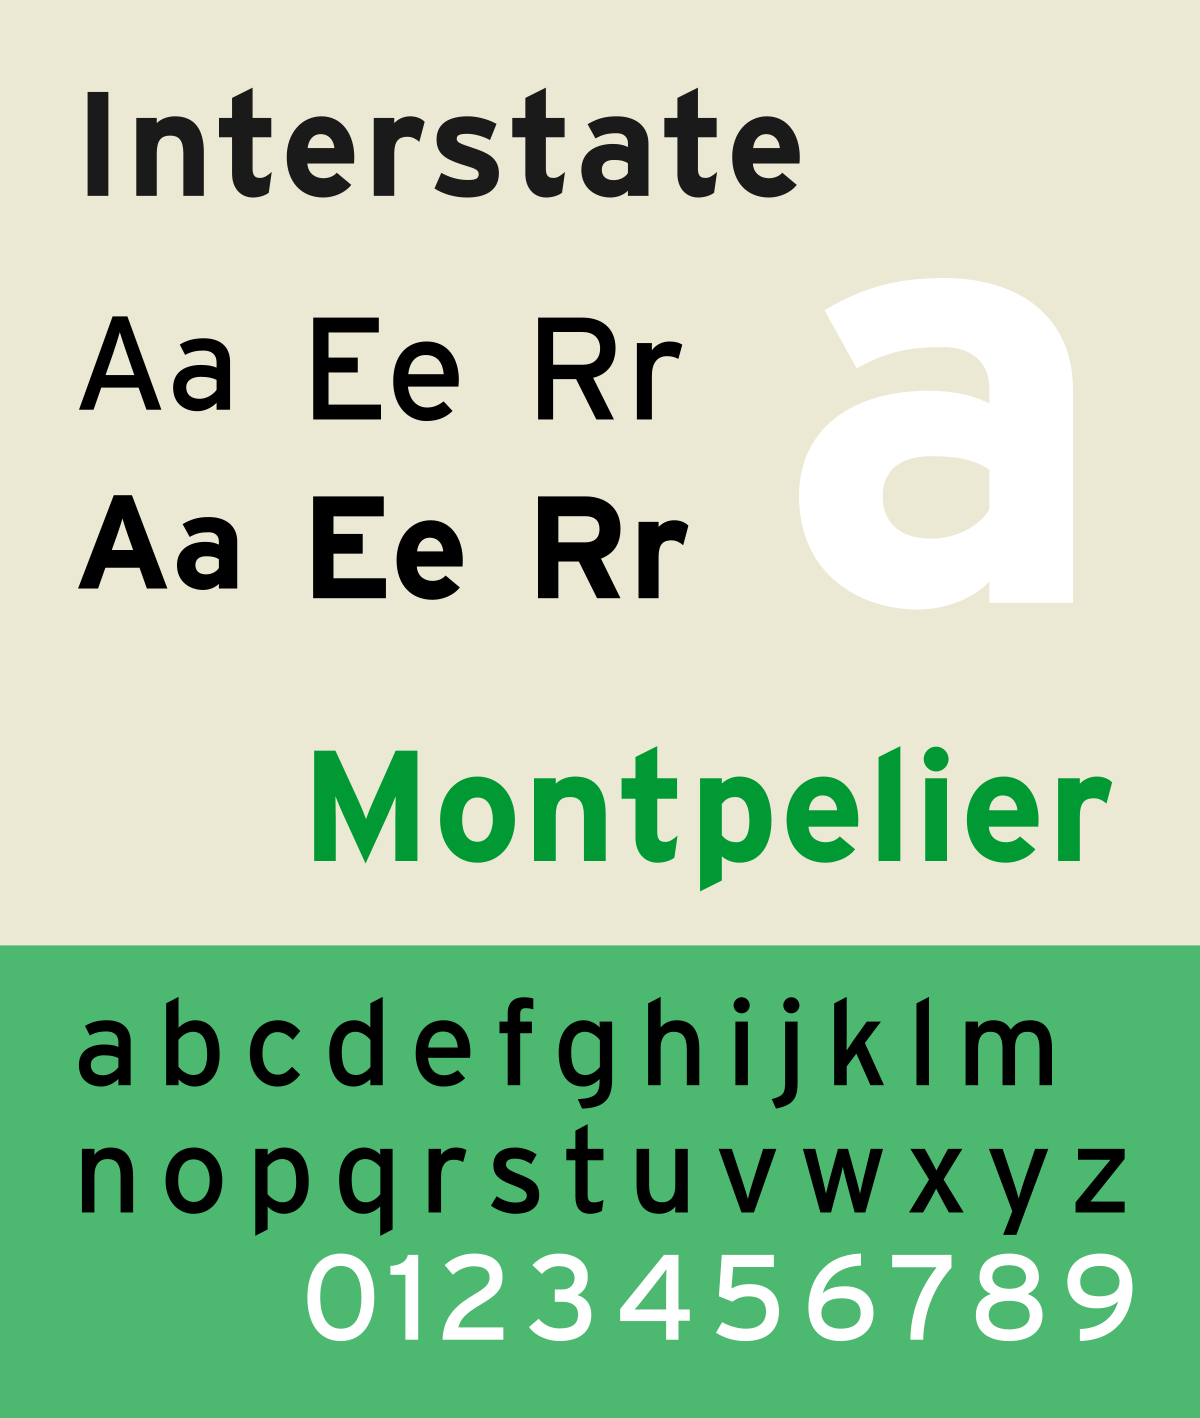 Que Es Caligrafia Wikipedia Interstate Typeface Wikipedia Typography Interstate Font